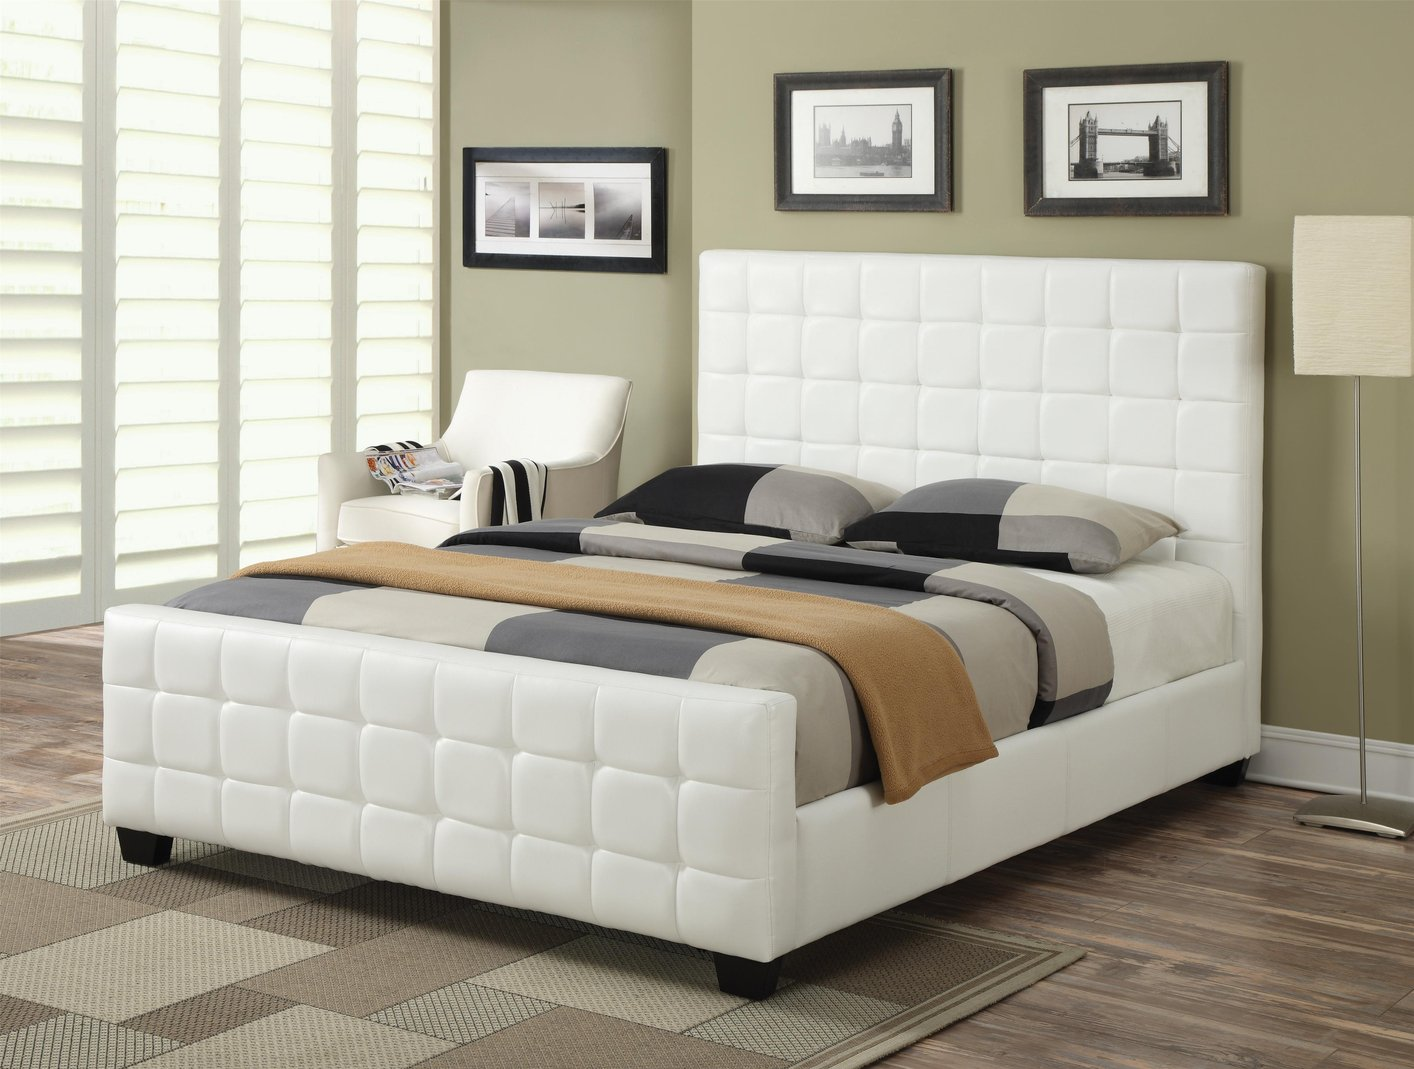 White Leather Full Size Bed - Steal-A-Sofa Furniture Outlet Los ...